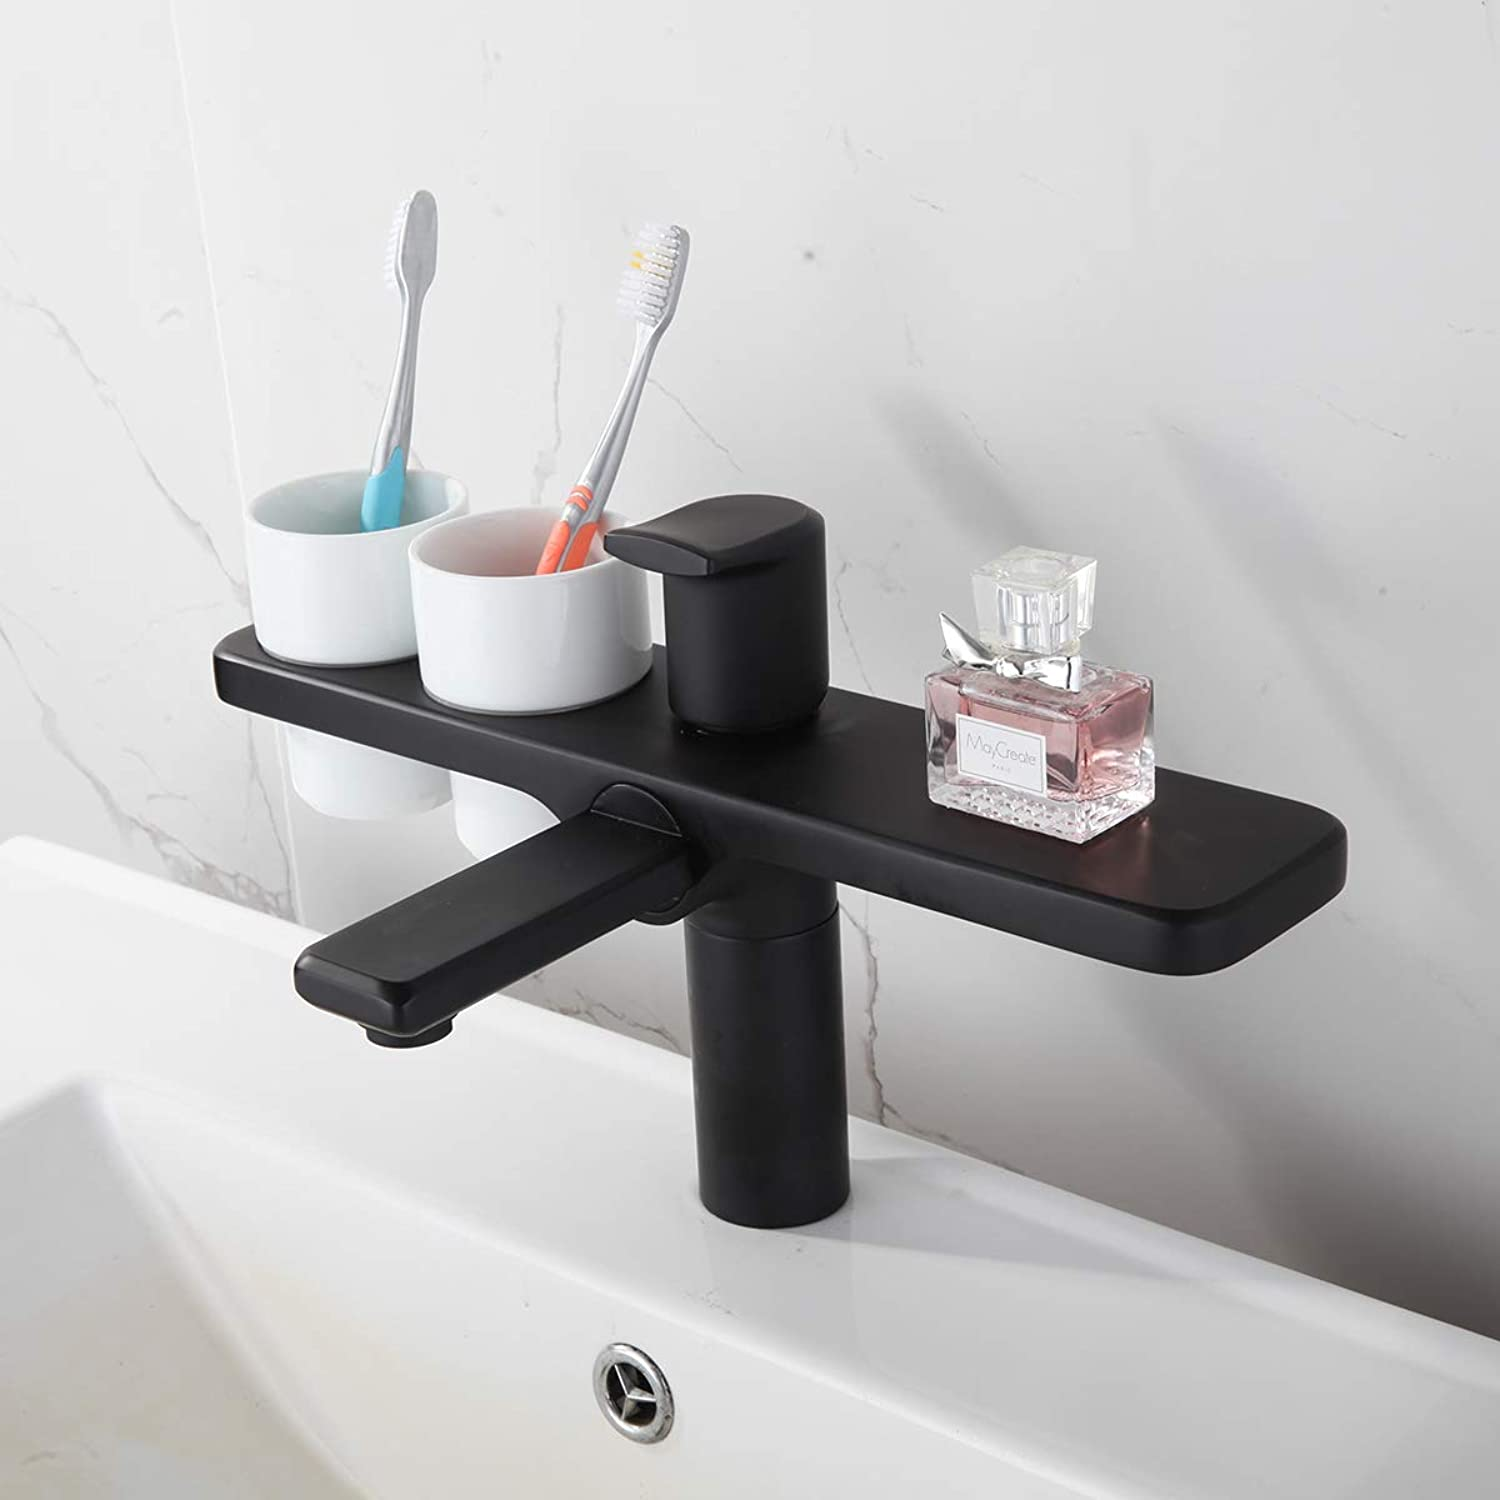 ZMHOME Brass 360 Degree Chrome-Plated Basin Black Bathroom Sink Basin Faucet With Double Toothbrush Cup Holder,Black